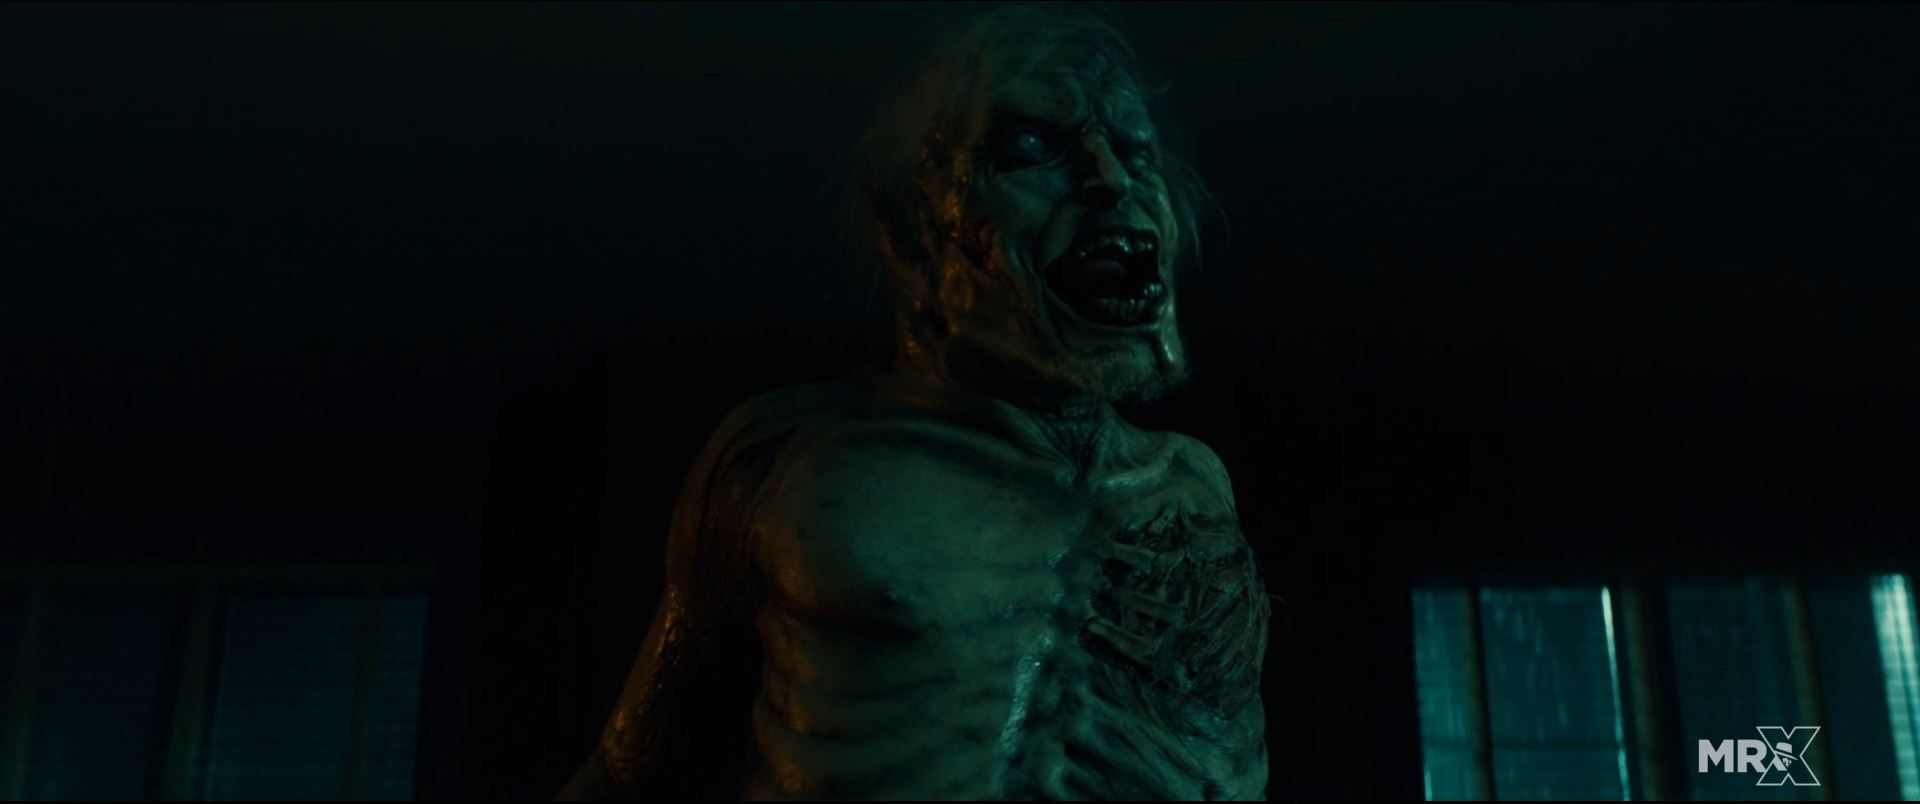 Scary Stories to Tell in the Dark VFX Breakdown